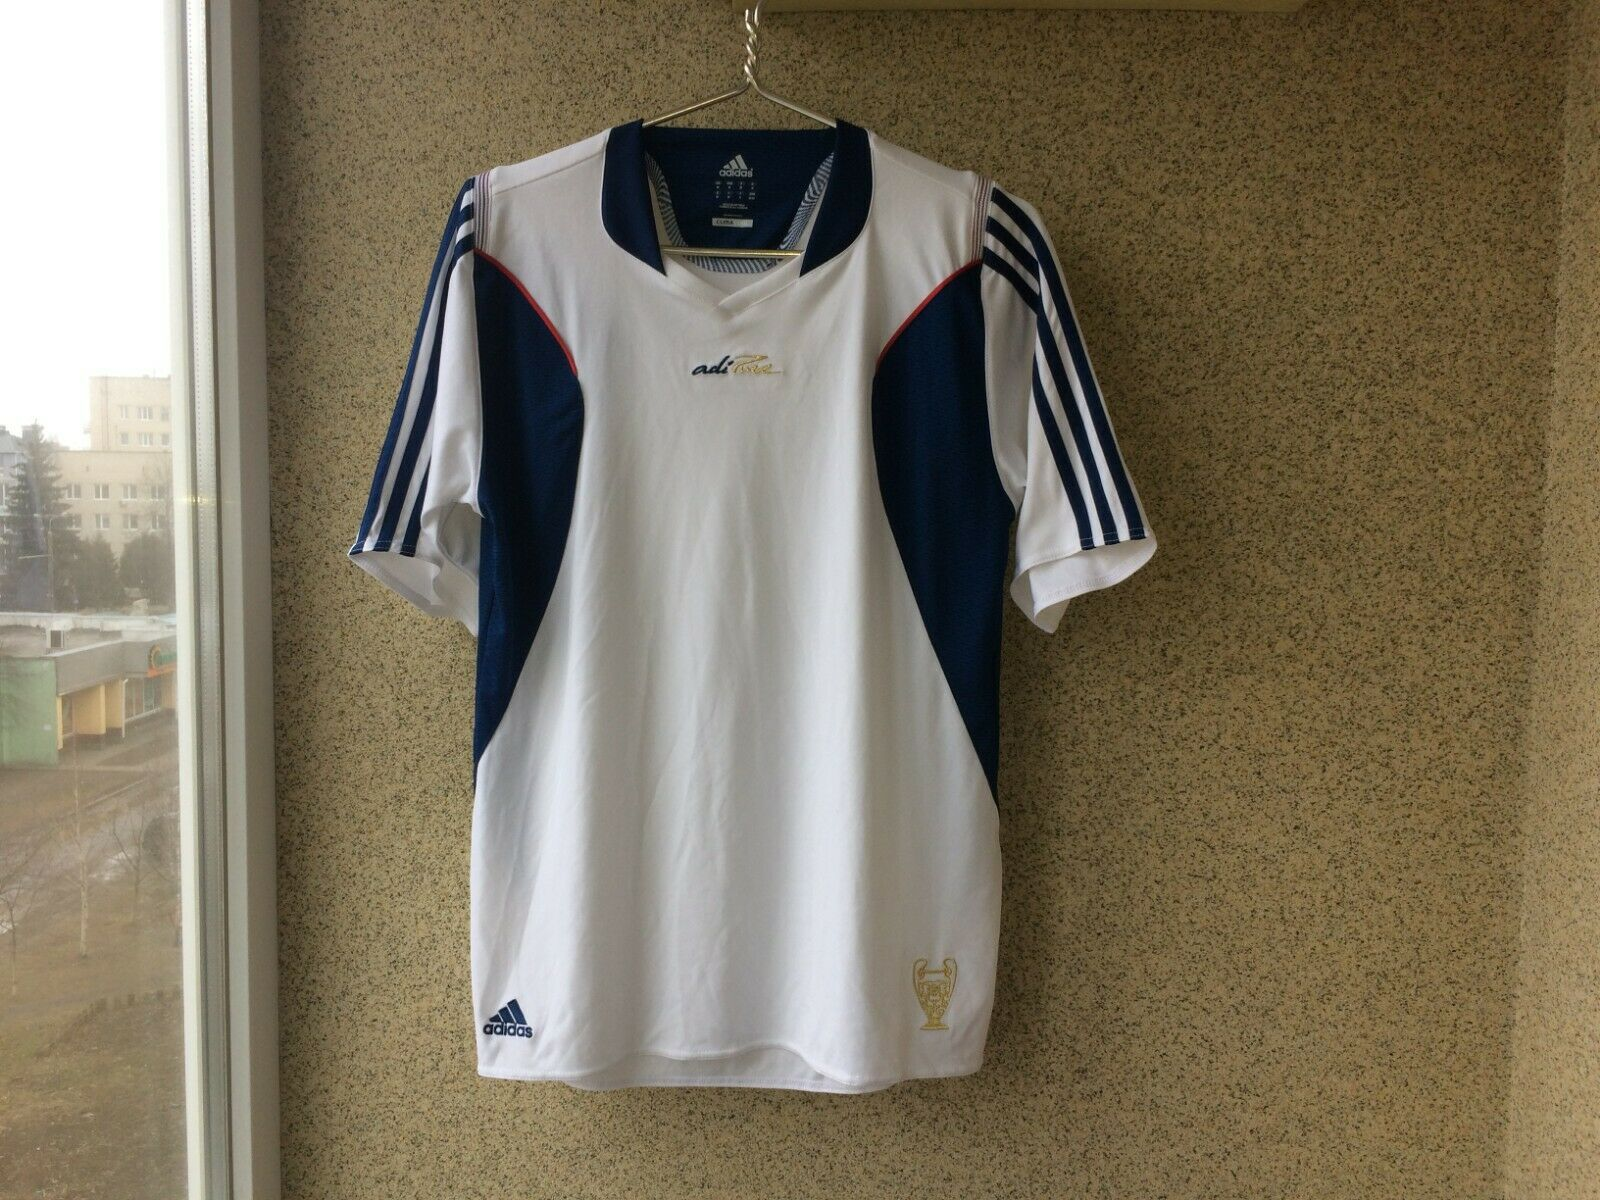 ADIPURE FOOTBALL SHIRT 2010 2011 JERSEY ADIDAS SOCCER CHAMPION LEAGUE RARE